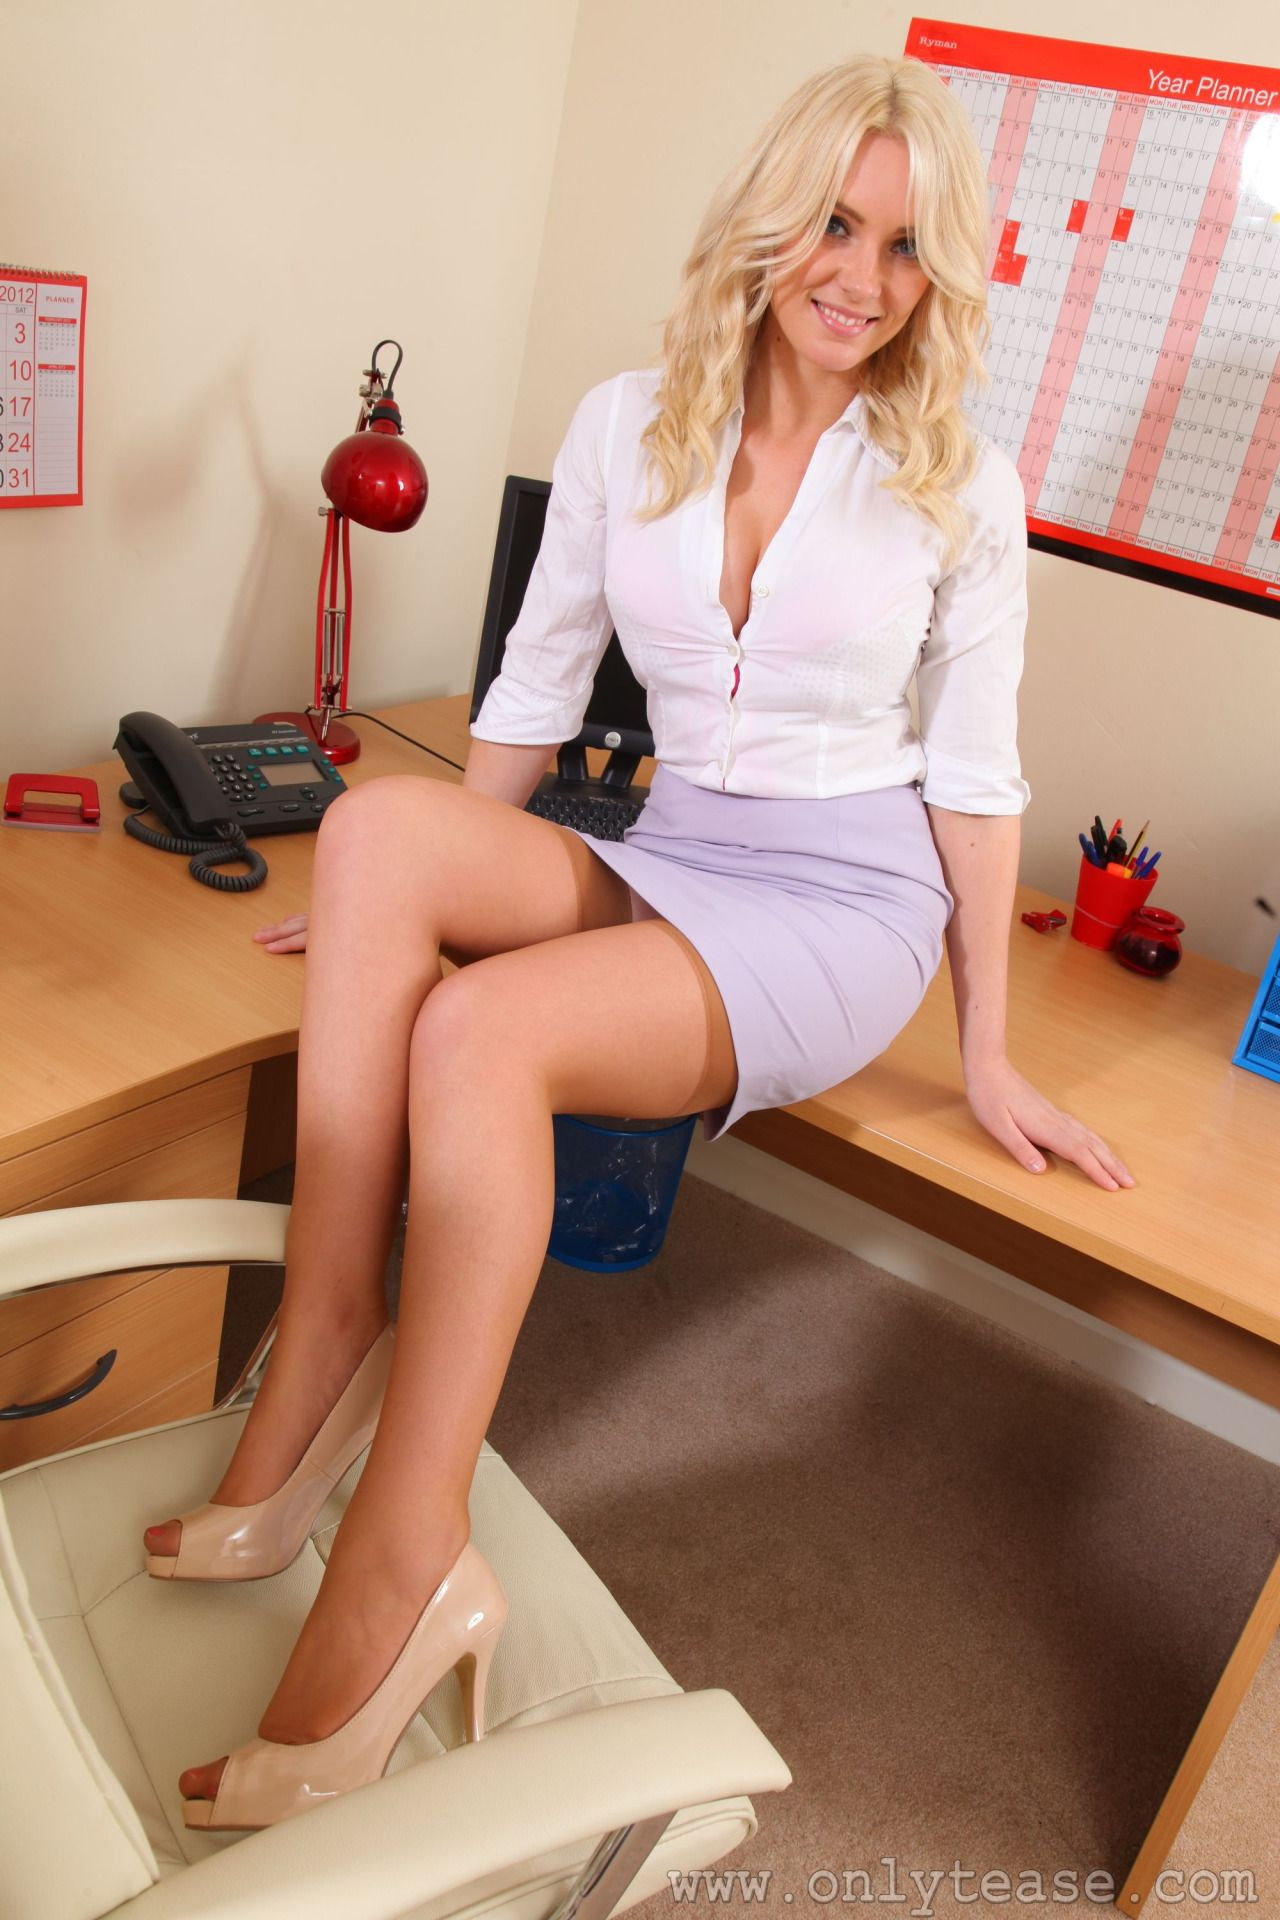 Average. jasmine blonde pantyhose tease she